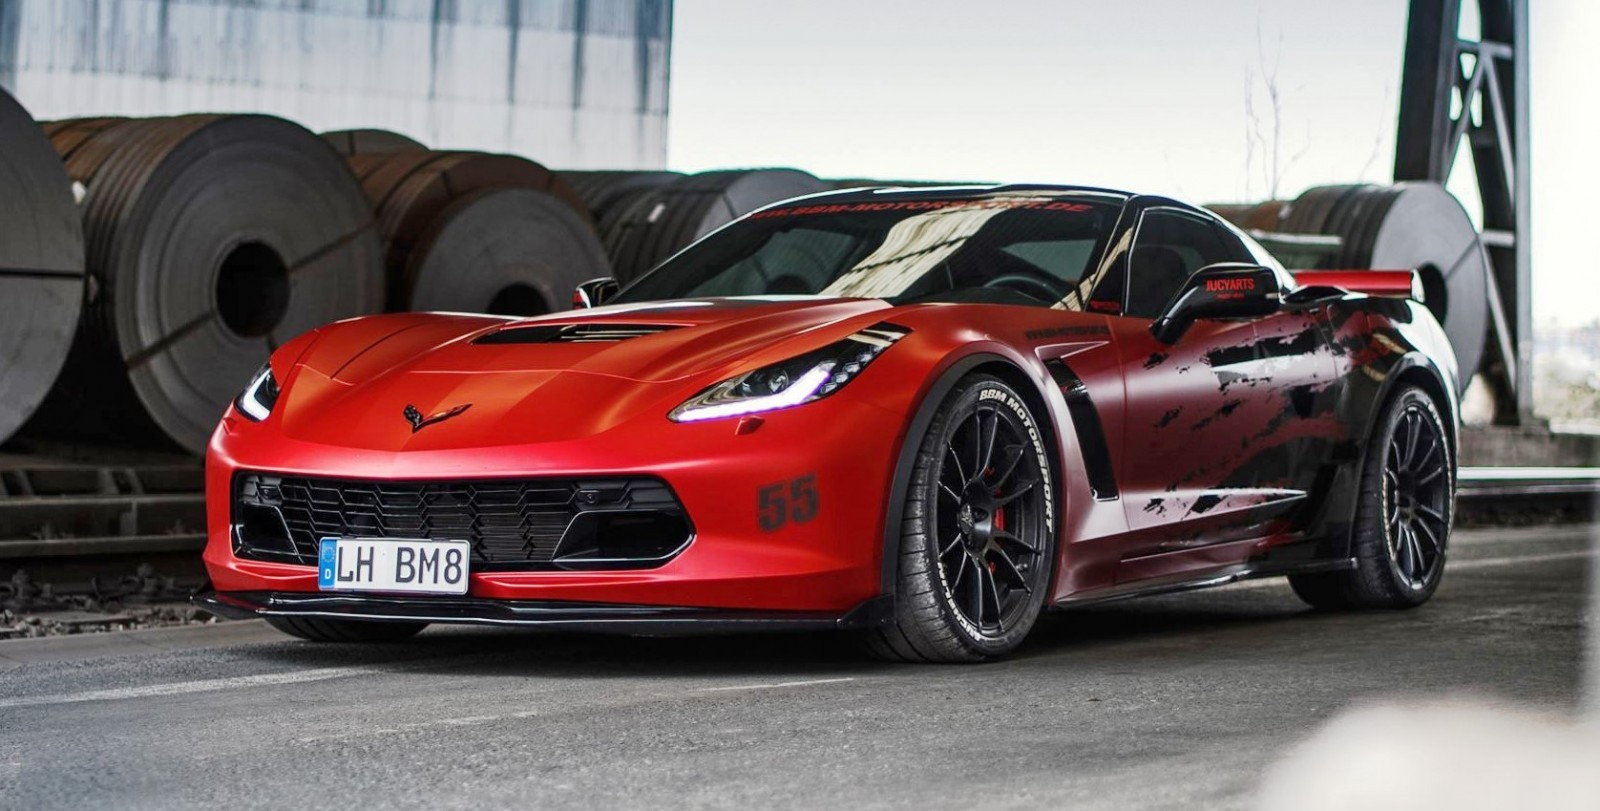 2016 chevrolet corvette z06 by bbm motorsport hear the 700hp blackbooty 39 s capristo exhaust. Black Bedroom Furniture Sets. Home Design Ideas